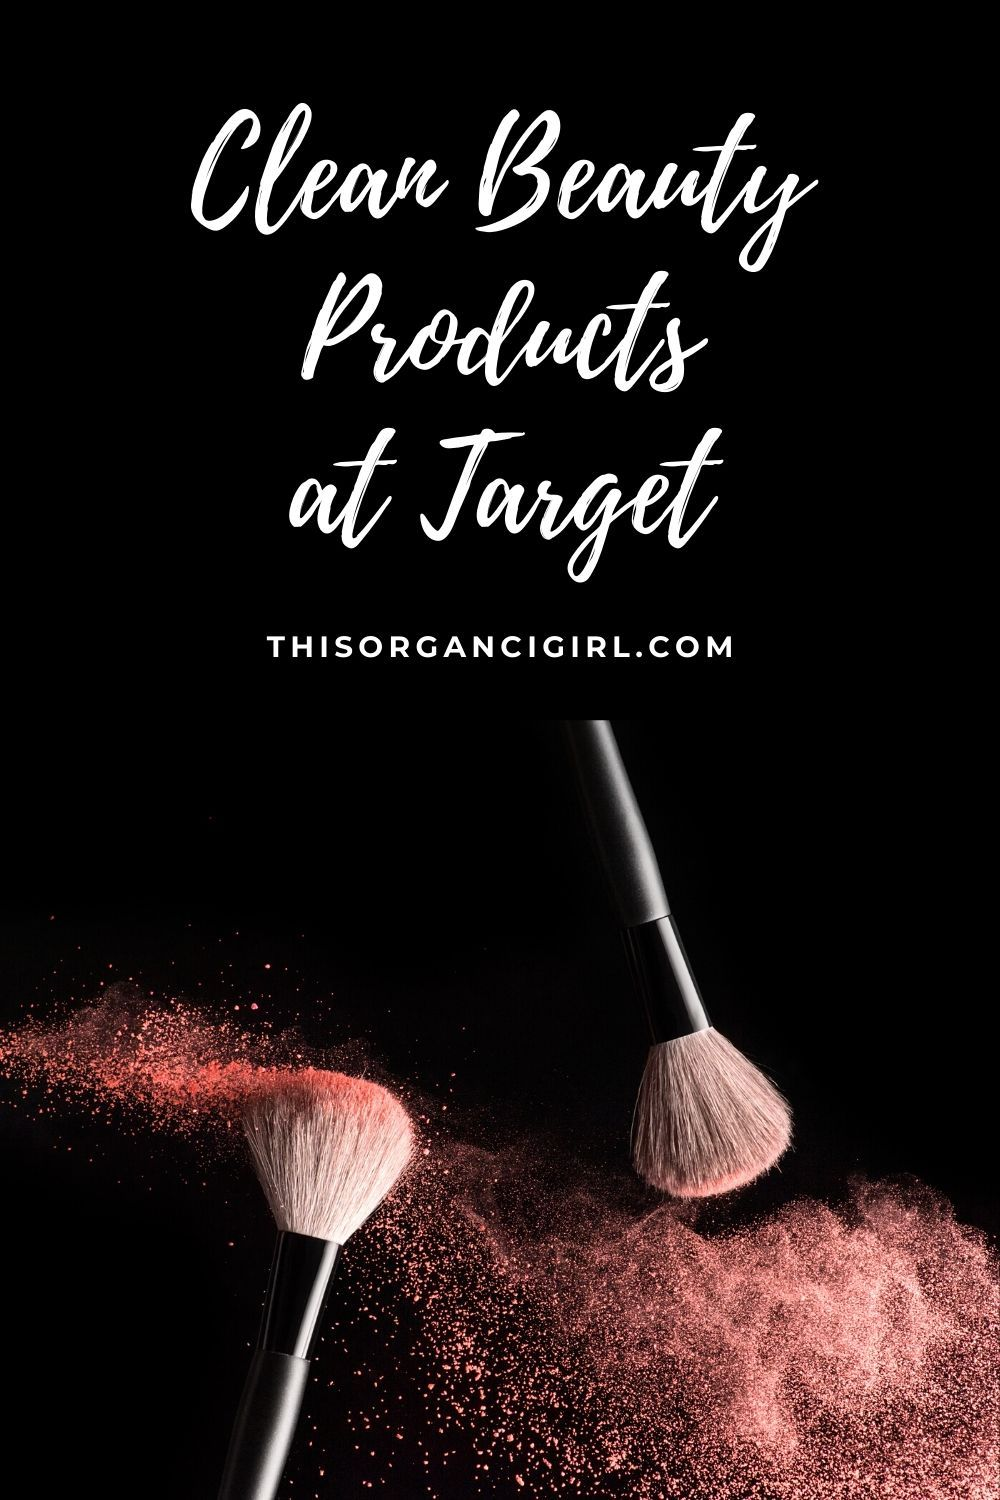 Three Top 10 Clean Beauty Target Guides in 2020 Clean